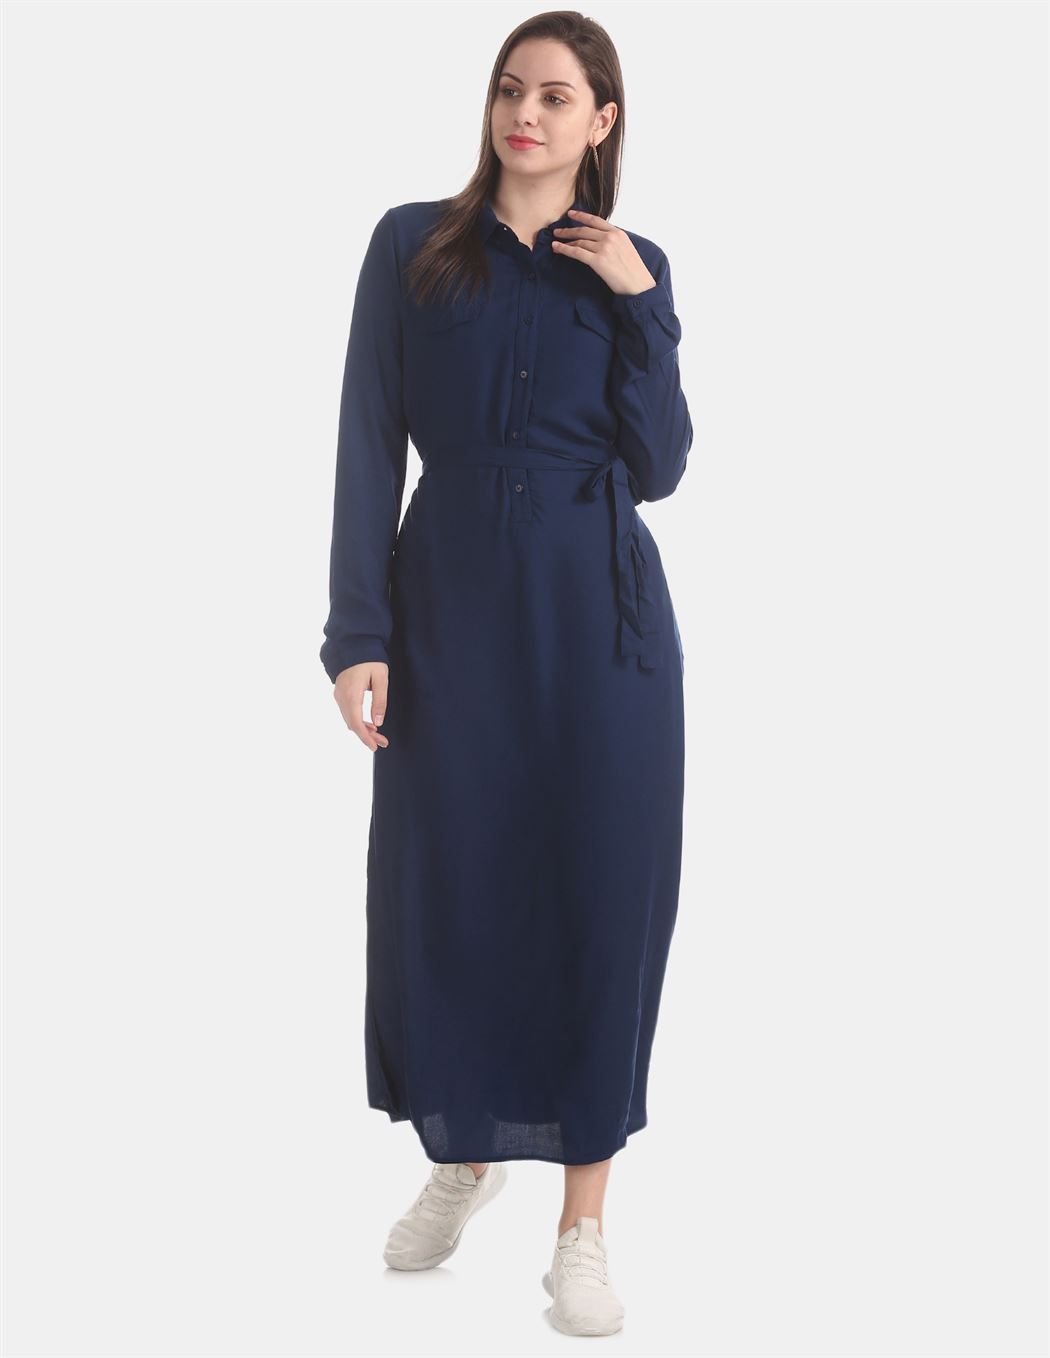 U.S. Polo Assn. Blue Belted Shirt Dress